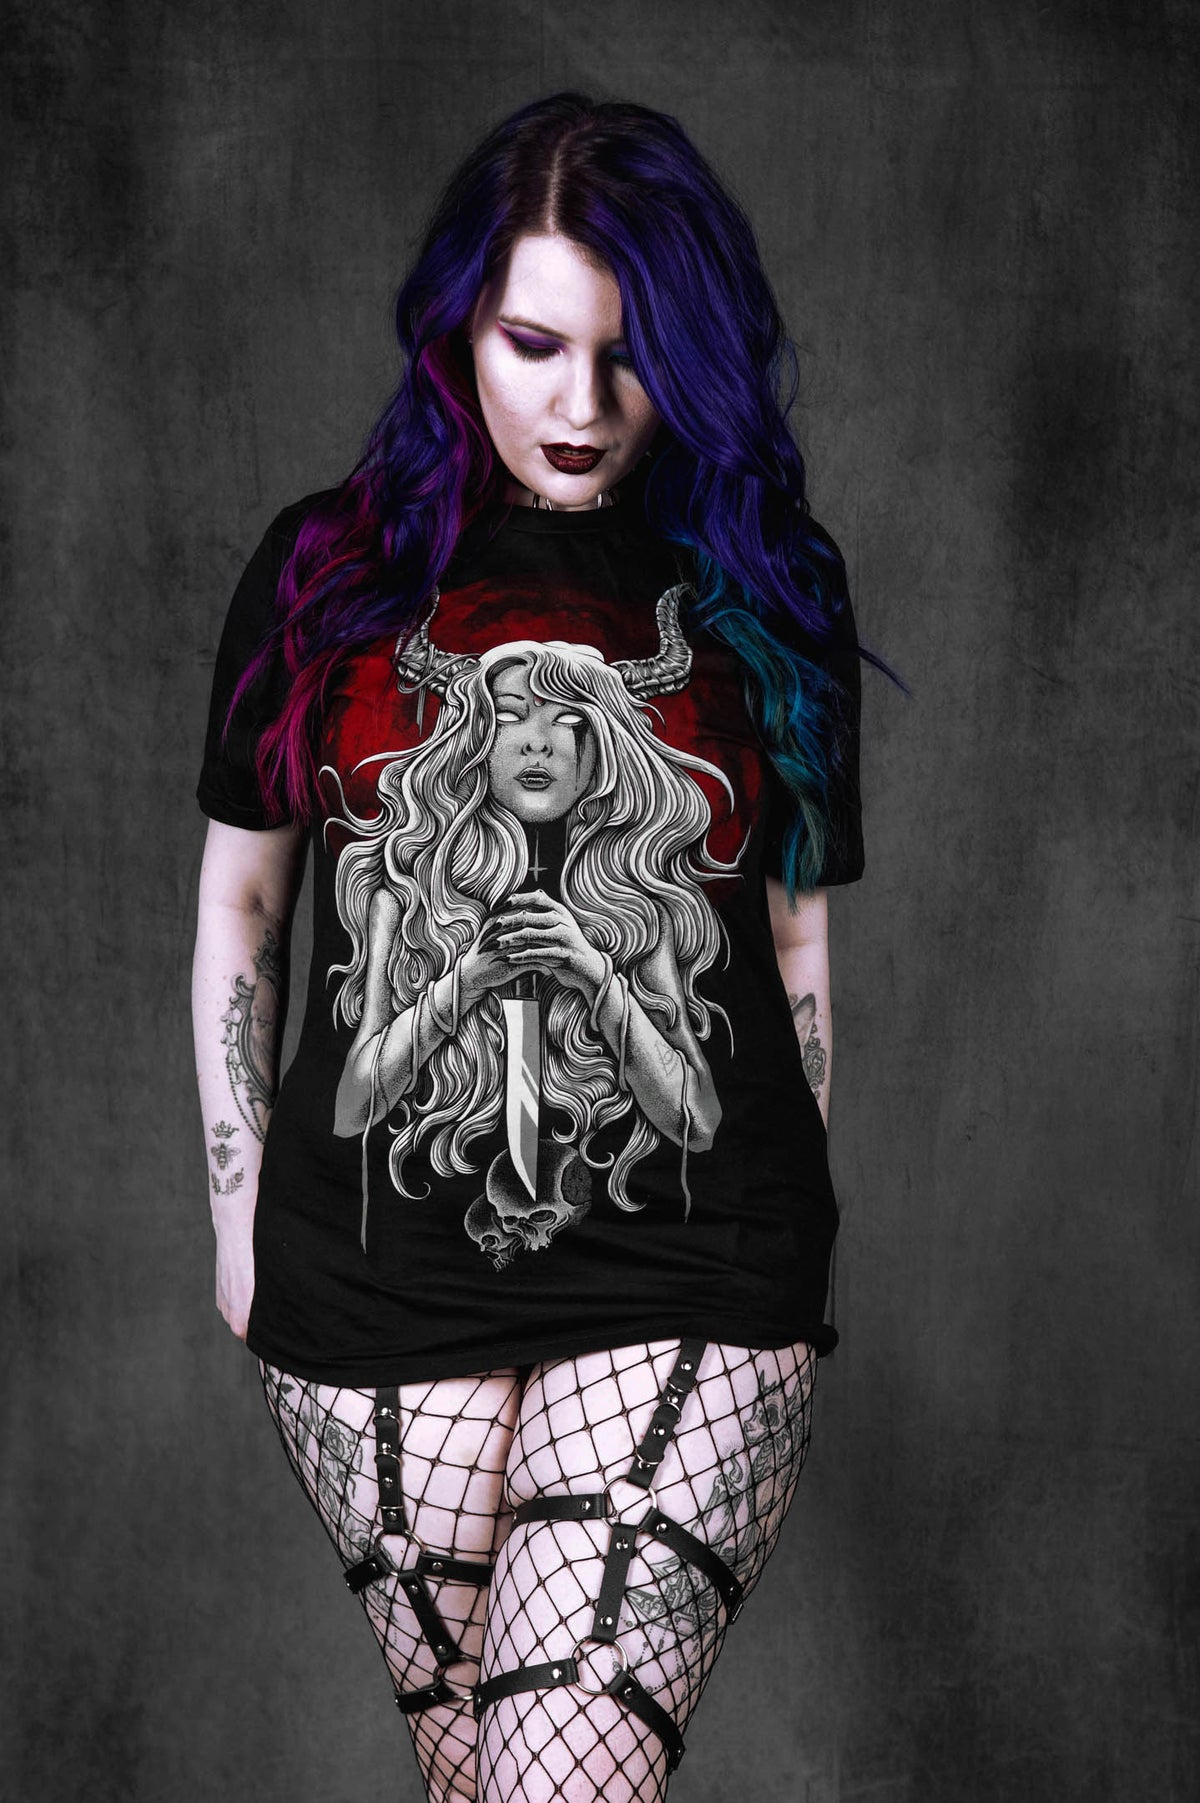 QUEEN OF DARKNESS UNISEX T-SHIRT